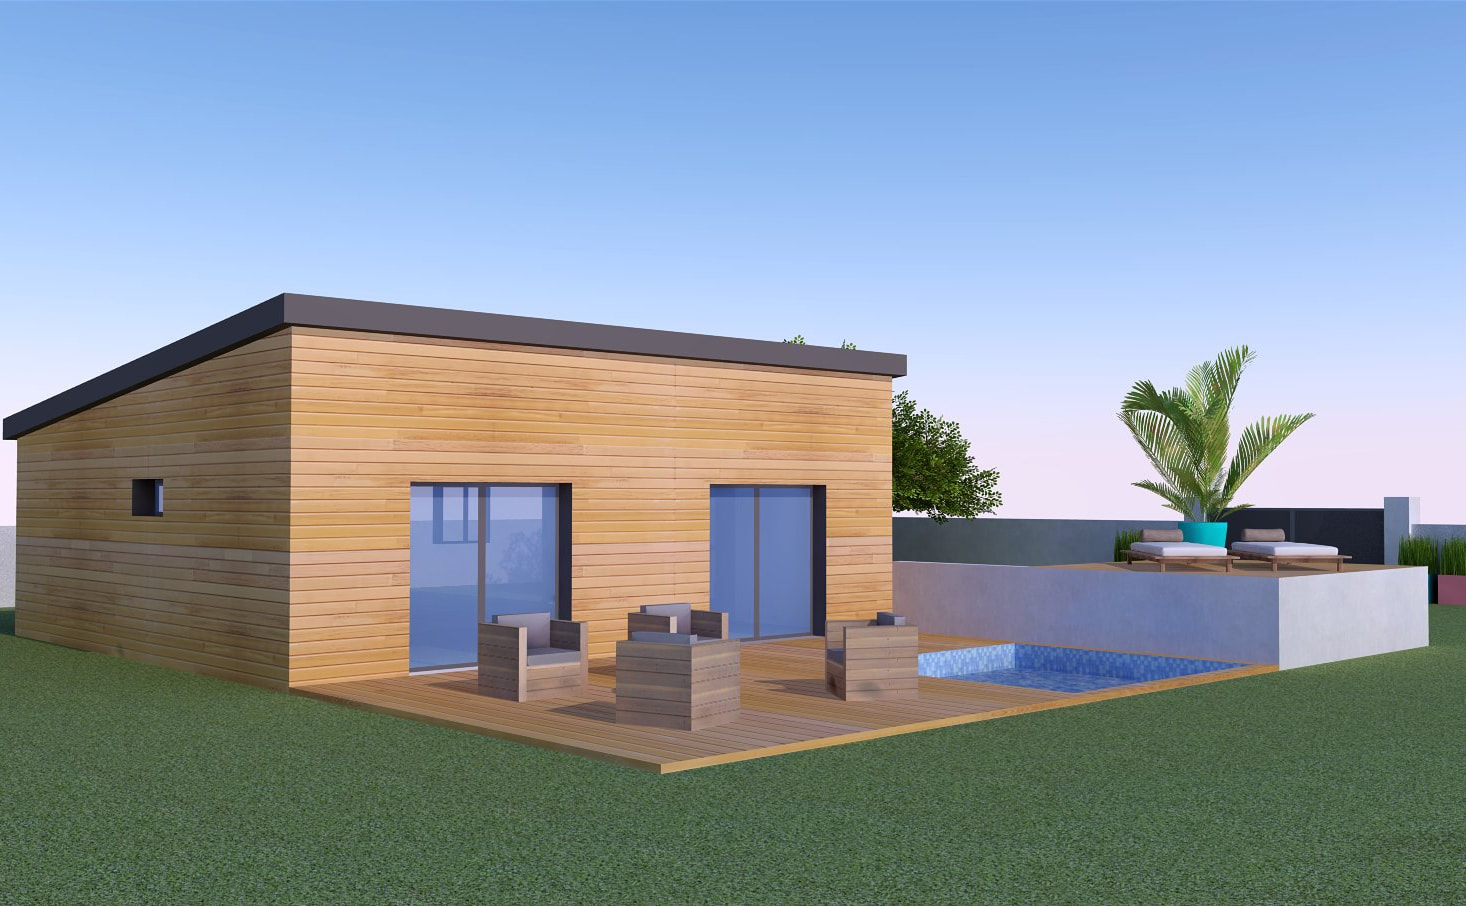 Prix construction maison en bois kit maison bois for Prix construction m2 2015